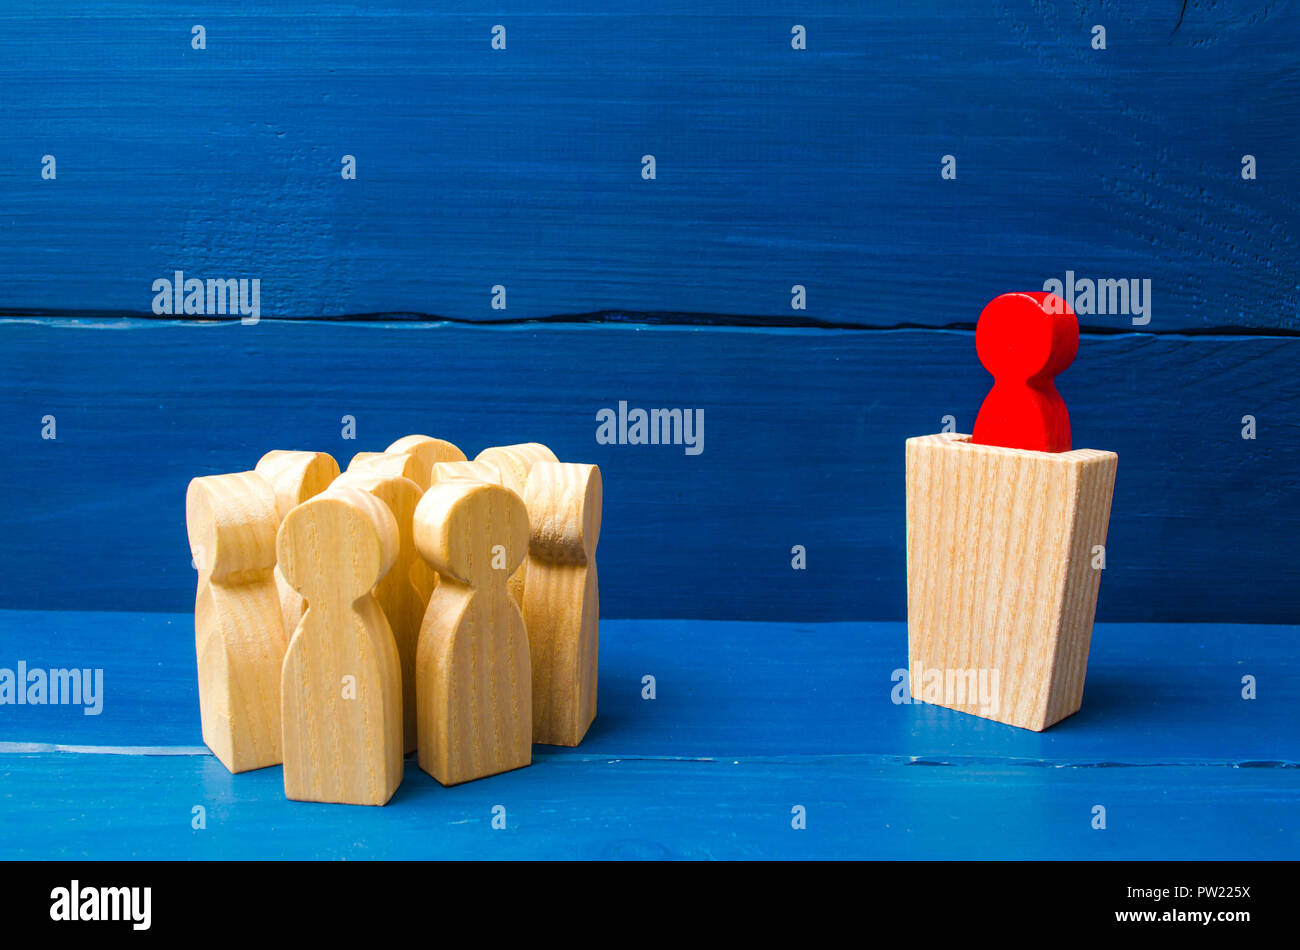 Business concept of leader and leadership qualities, crowd management, political debate and elections. Business management. Red leader from the rostru - Stock Image